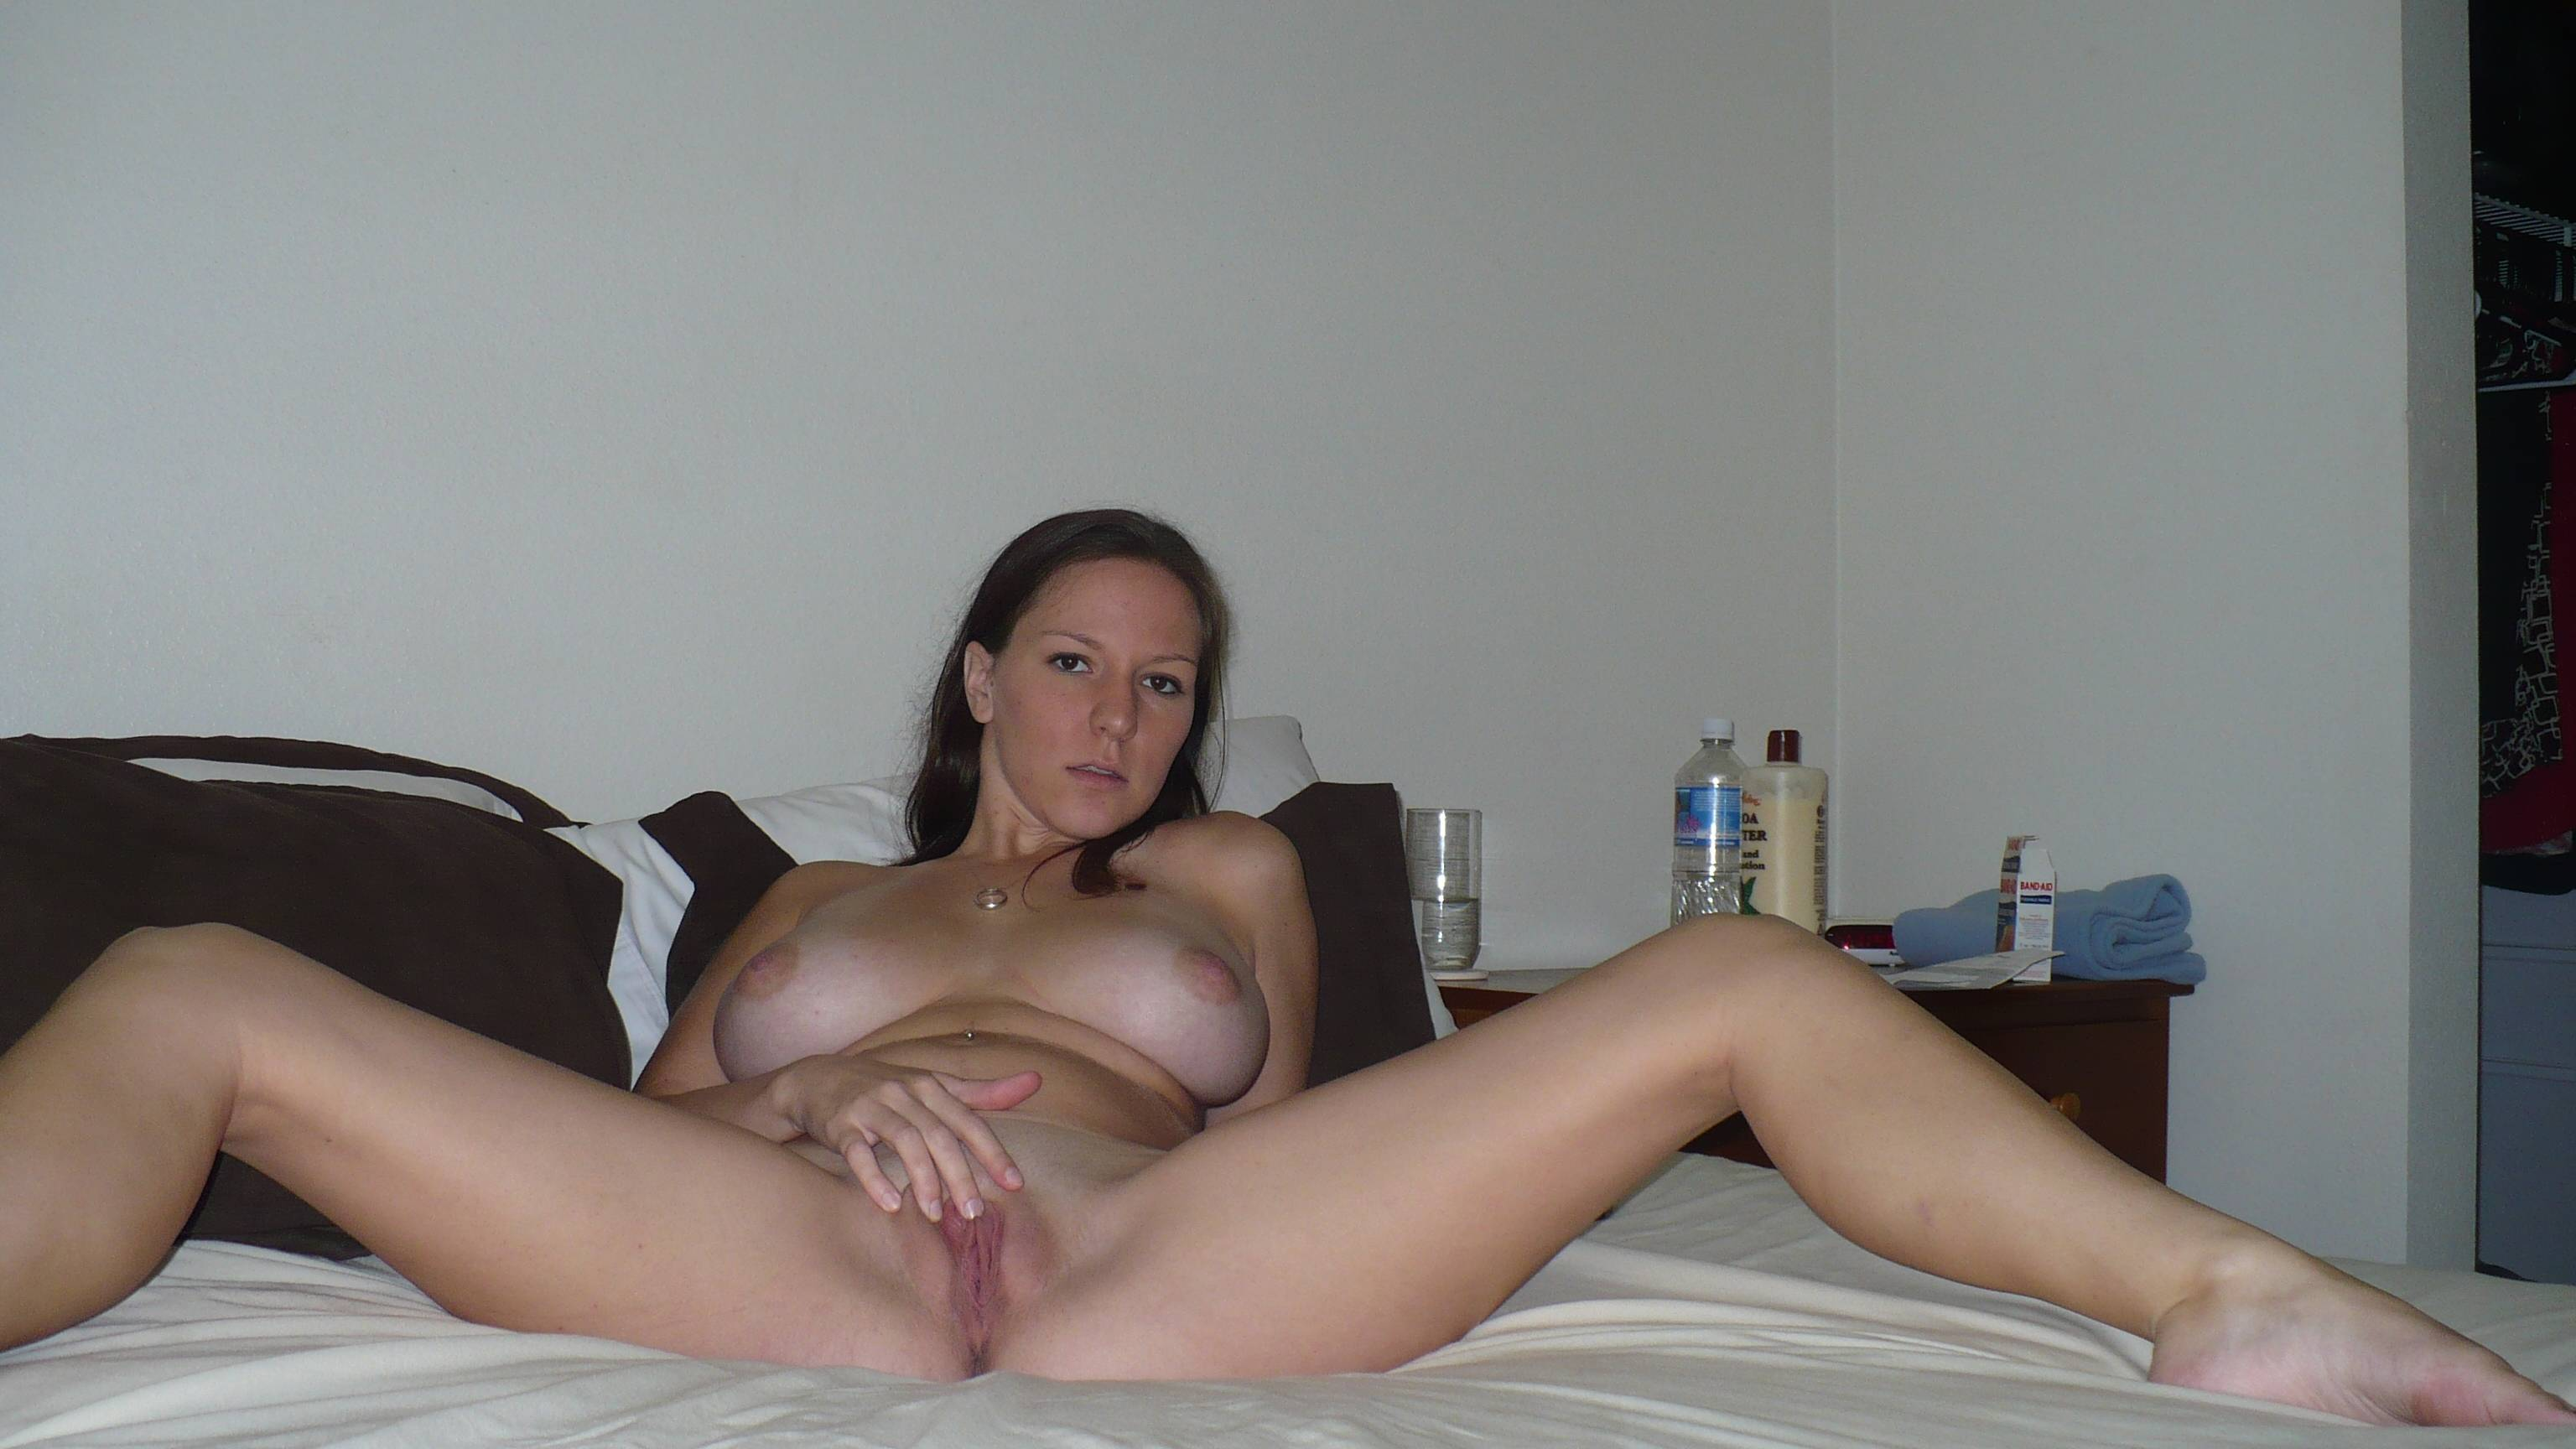 Opinion Bbw sexy naked spread eagle pussy